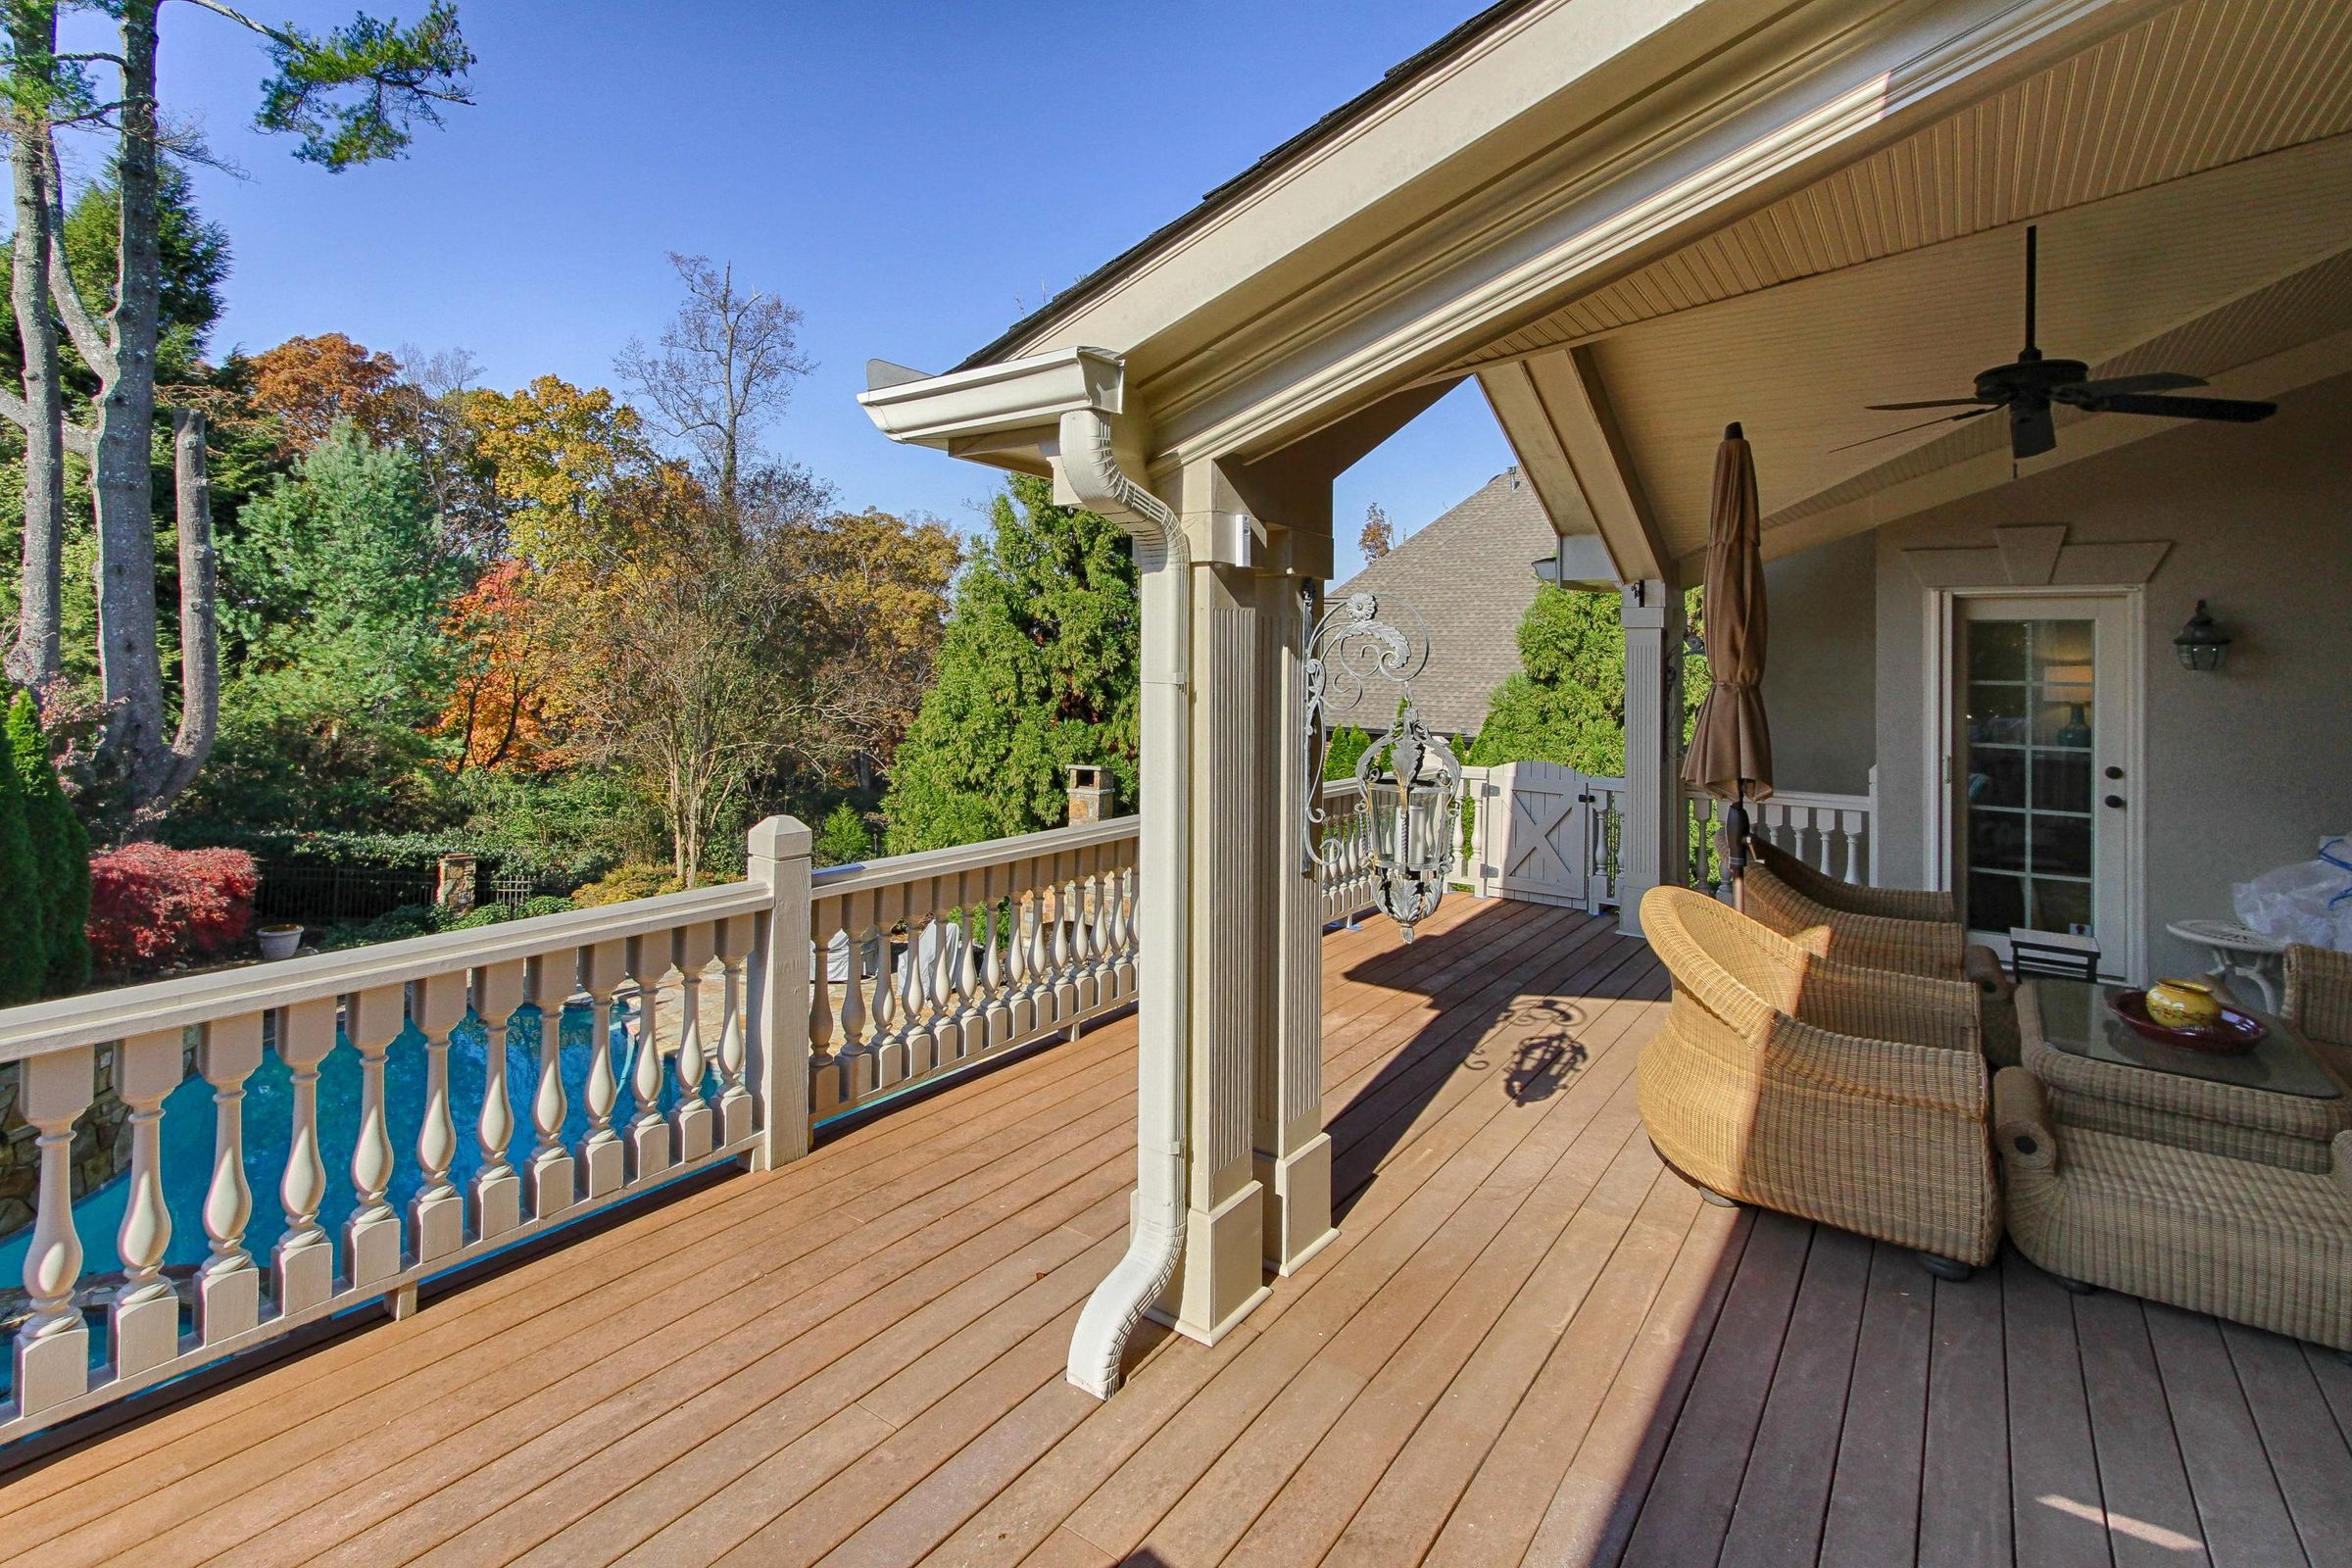 covered porch area